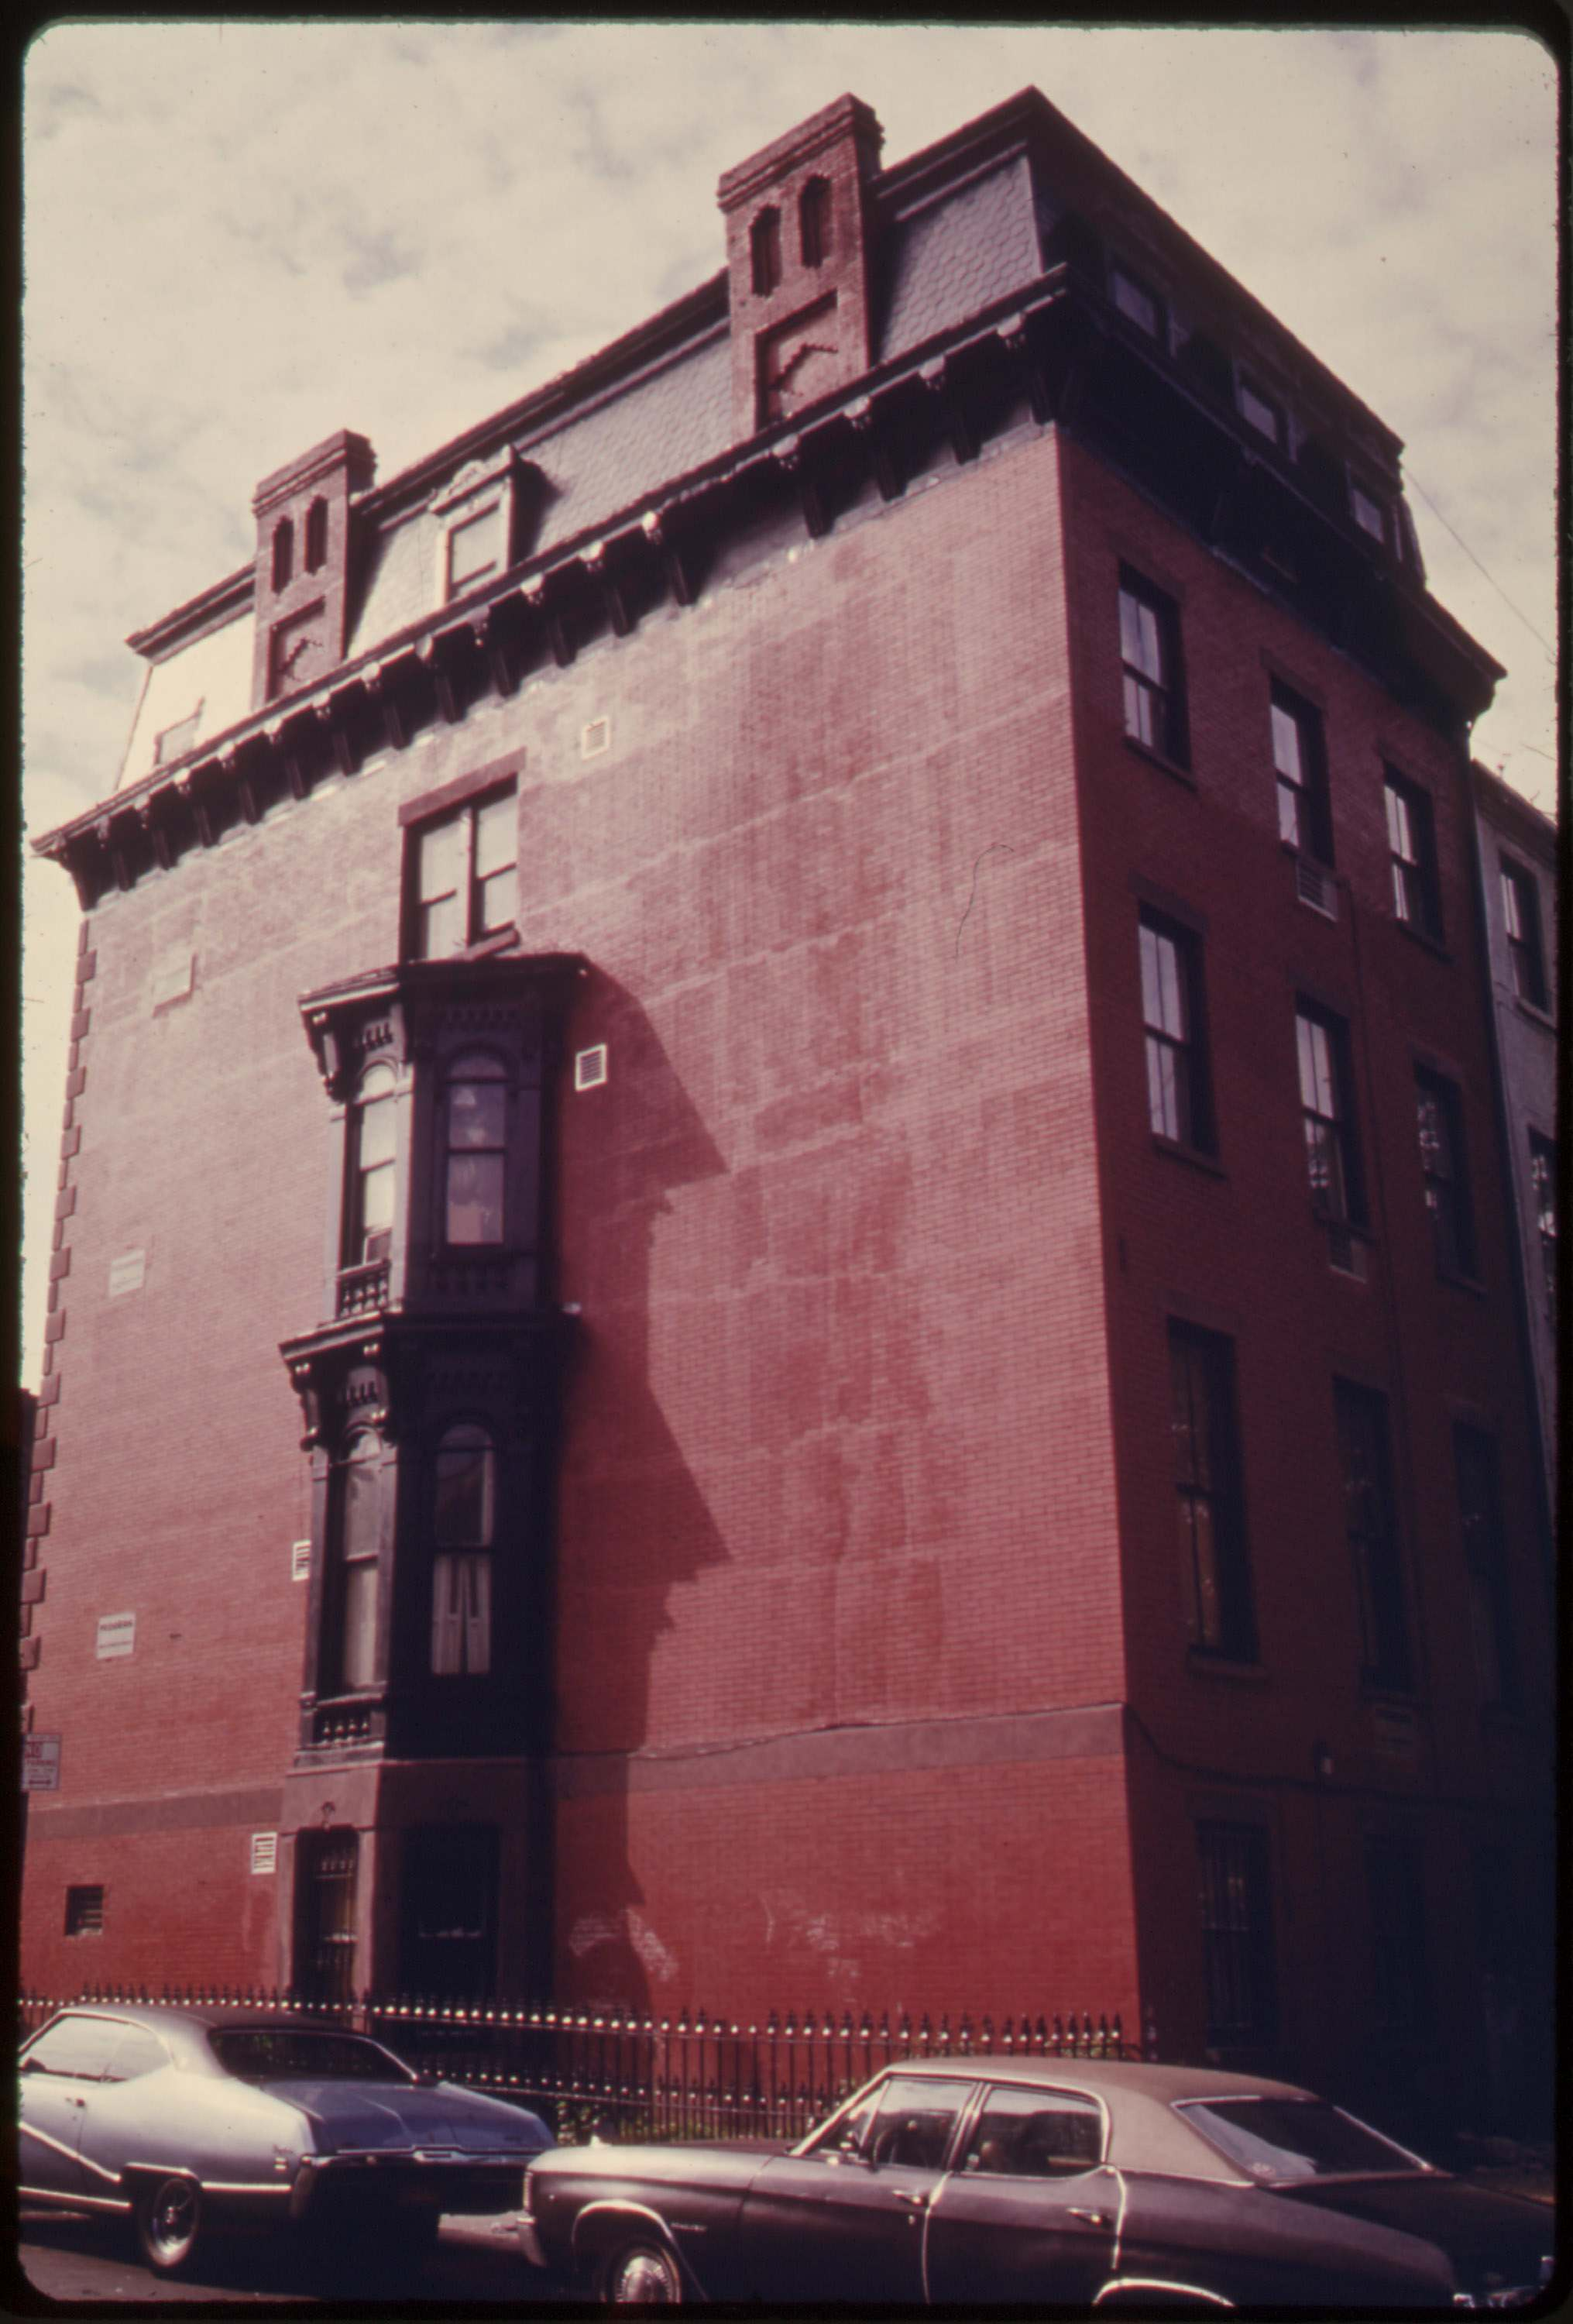 House in Park Slope, Brooklyn, June 1974.